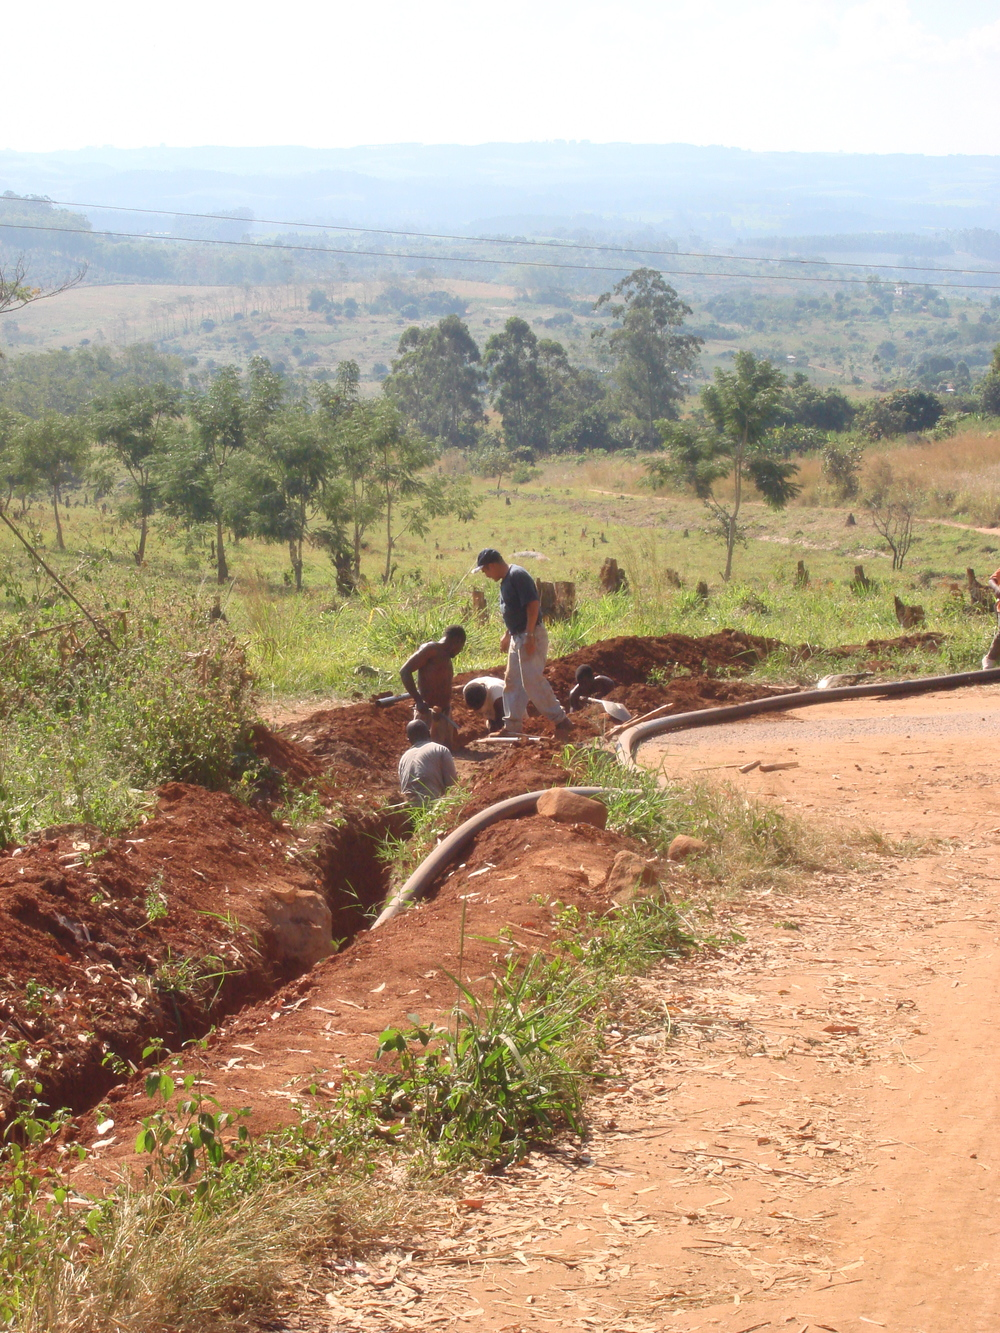 Pipeline install for Malamulo Hospital, Thyolo, Malawi.